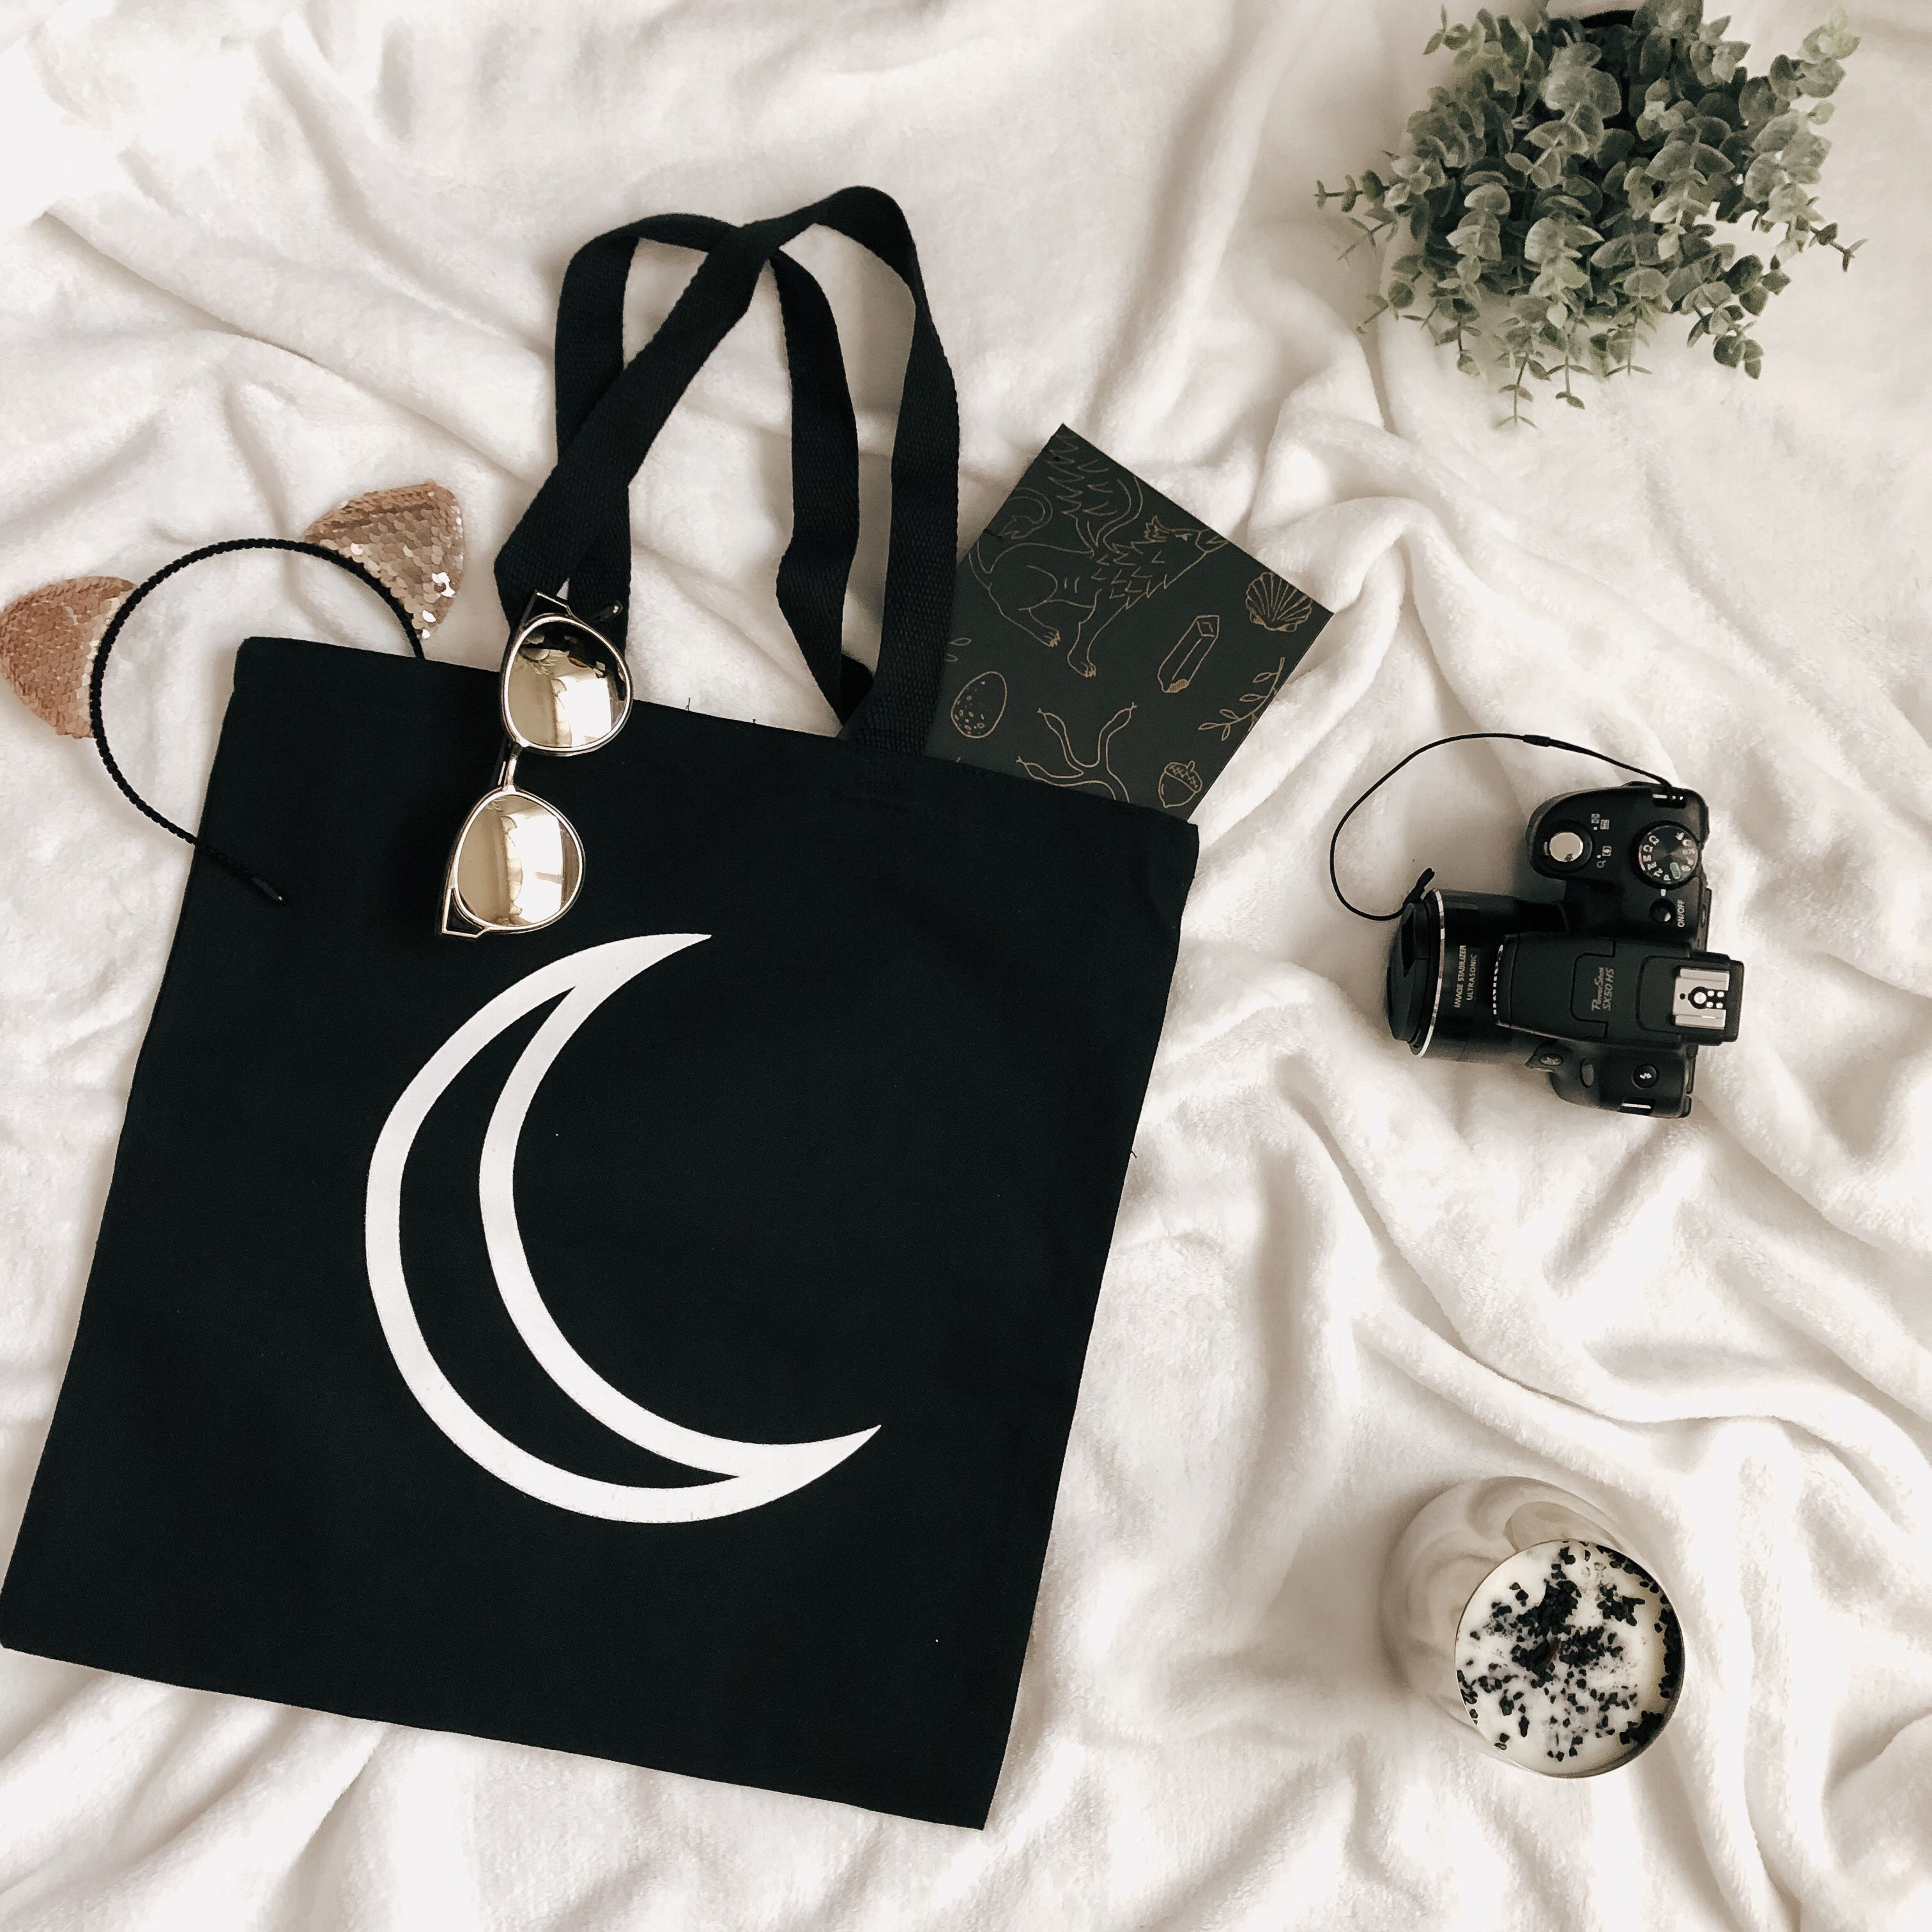 embroidery black eye and moon Tote bag in beige cotton